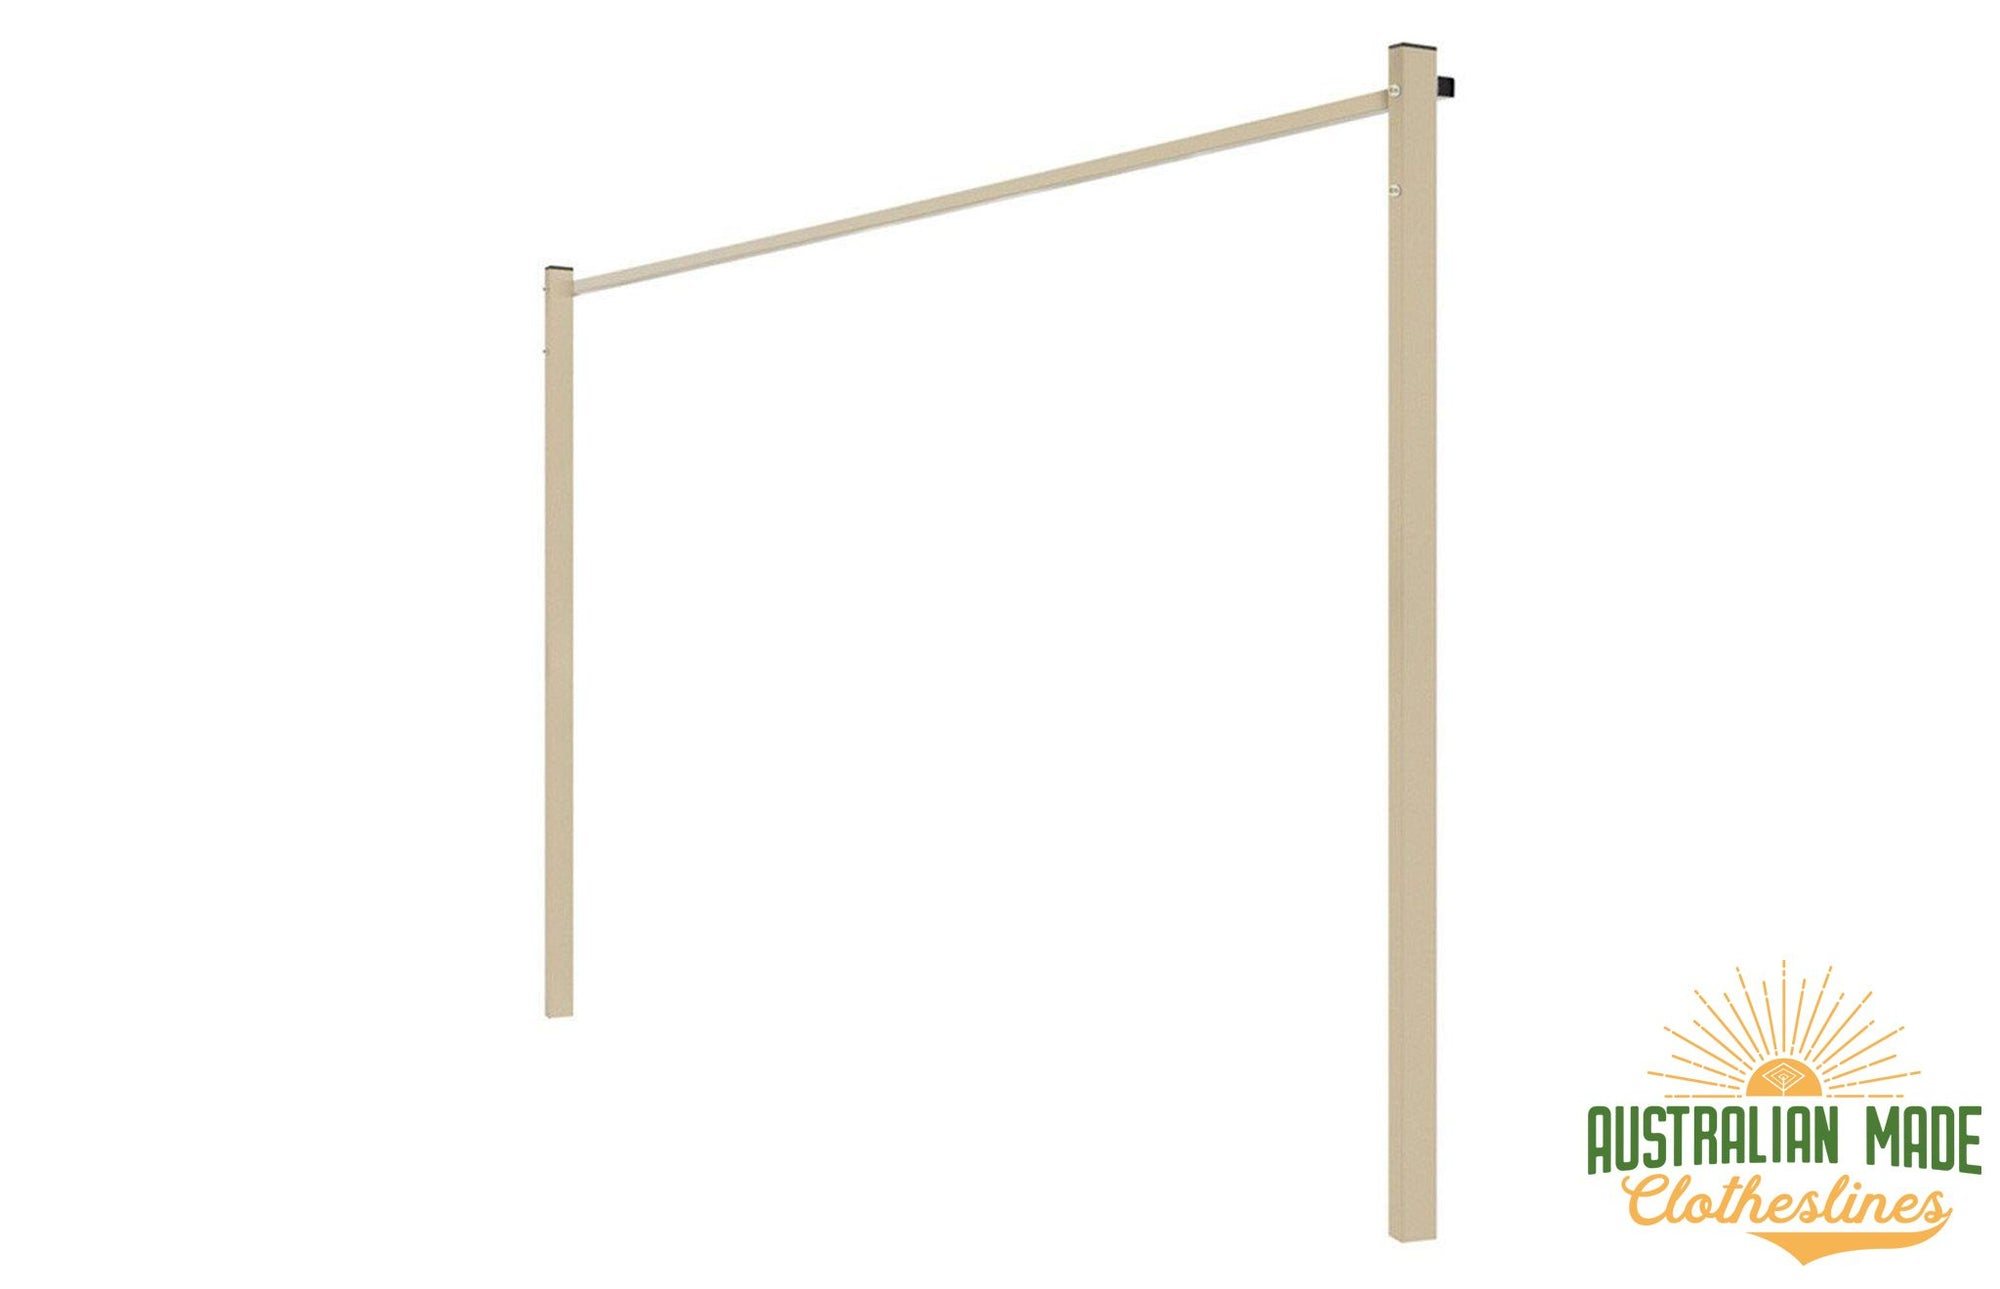 Austral Ground Mount Kit - Classic Cream Standard Ground Mount Kit for Soil or Grass Mounting - Australian Made Clotheslines